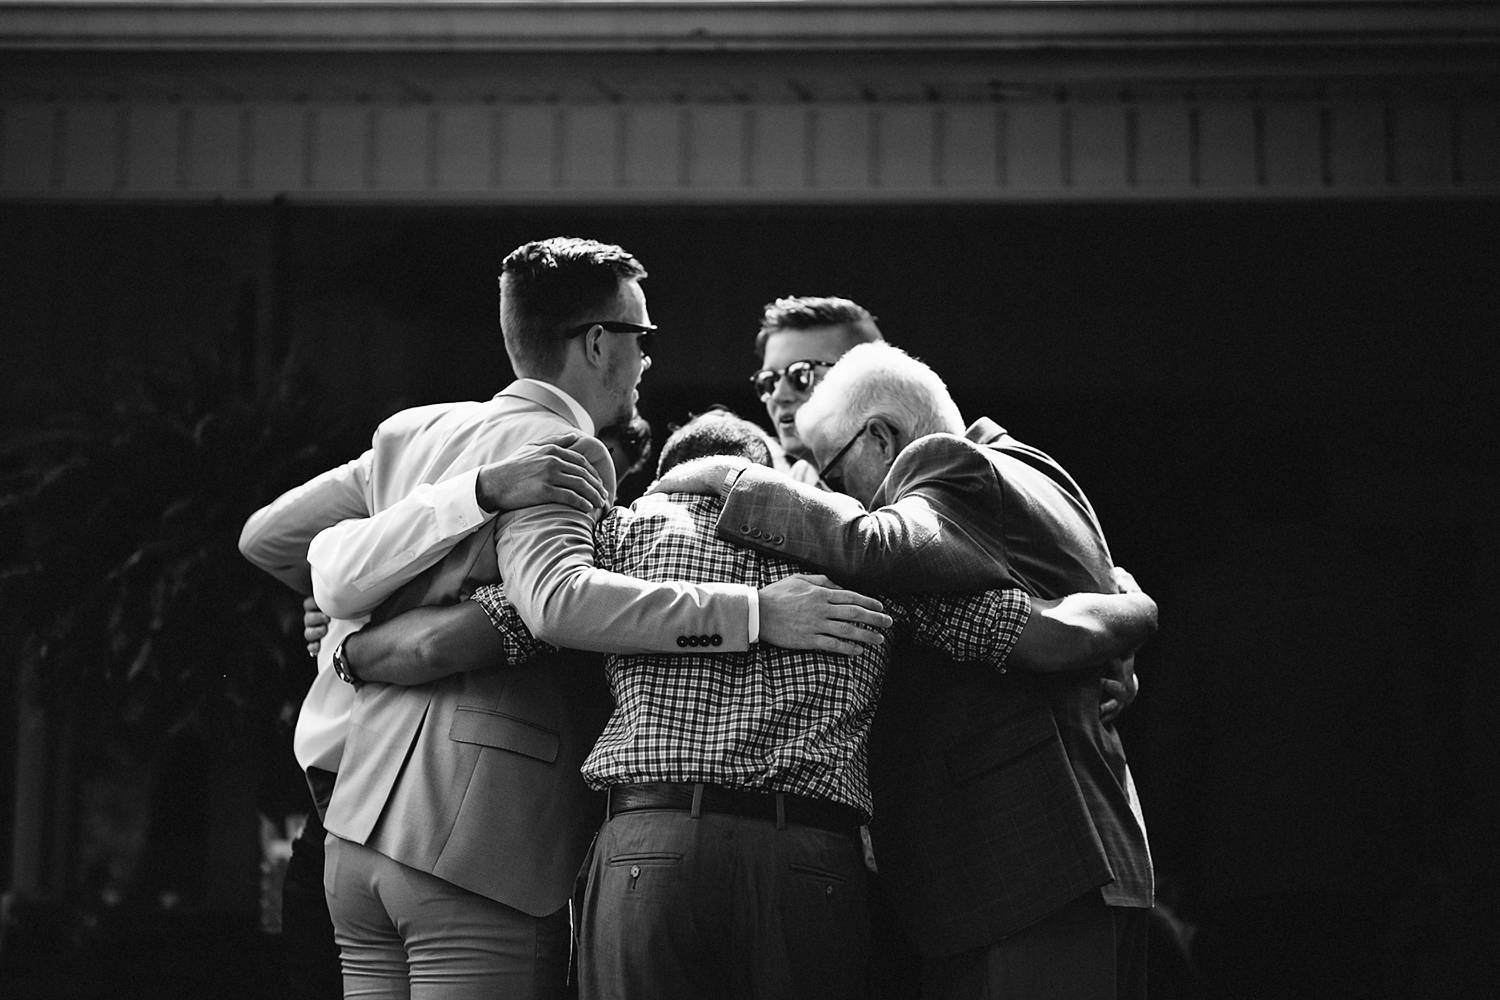 Backyard-family-intimate-cottage-wedding-chatum-kent-toronto-ontario-film-photographer-ryanne-hollies-photography-diy-documentary-photojournalistic-candid-moments-boys-hugging-bw.jpg